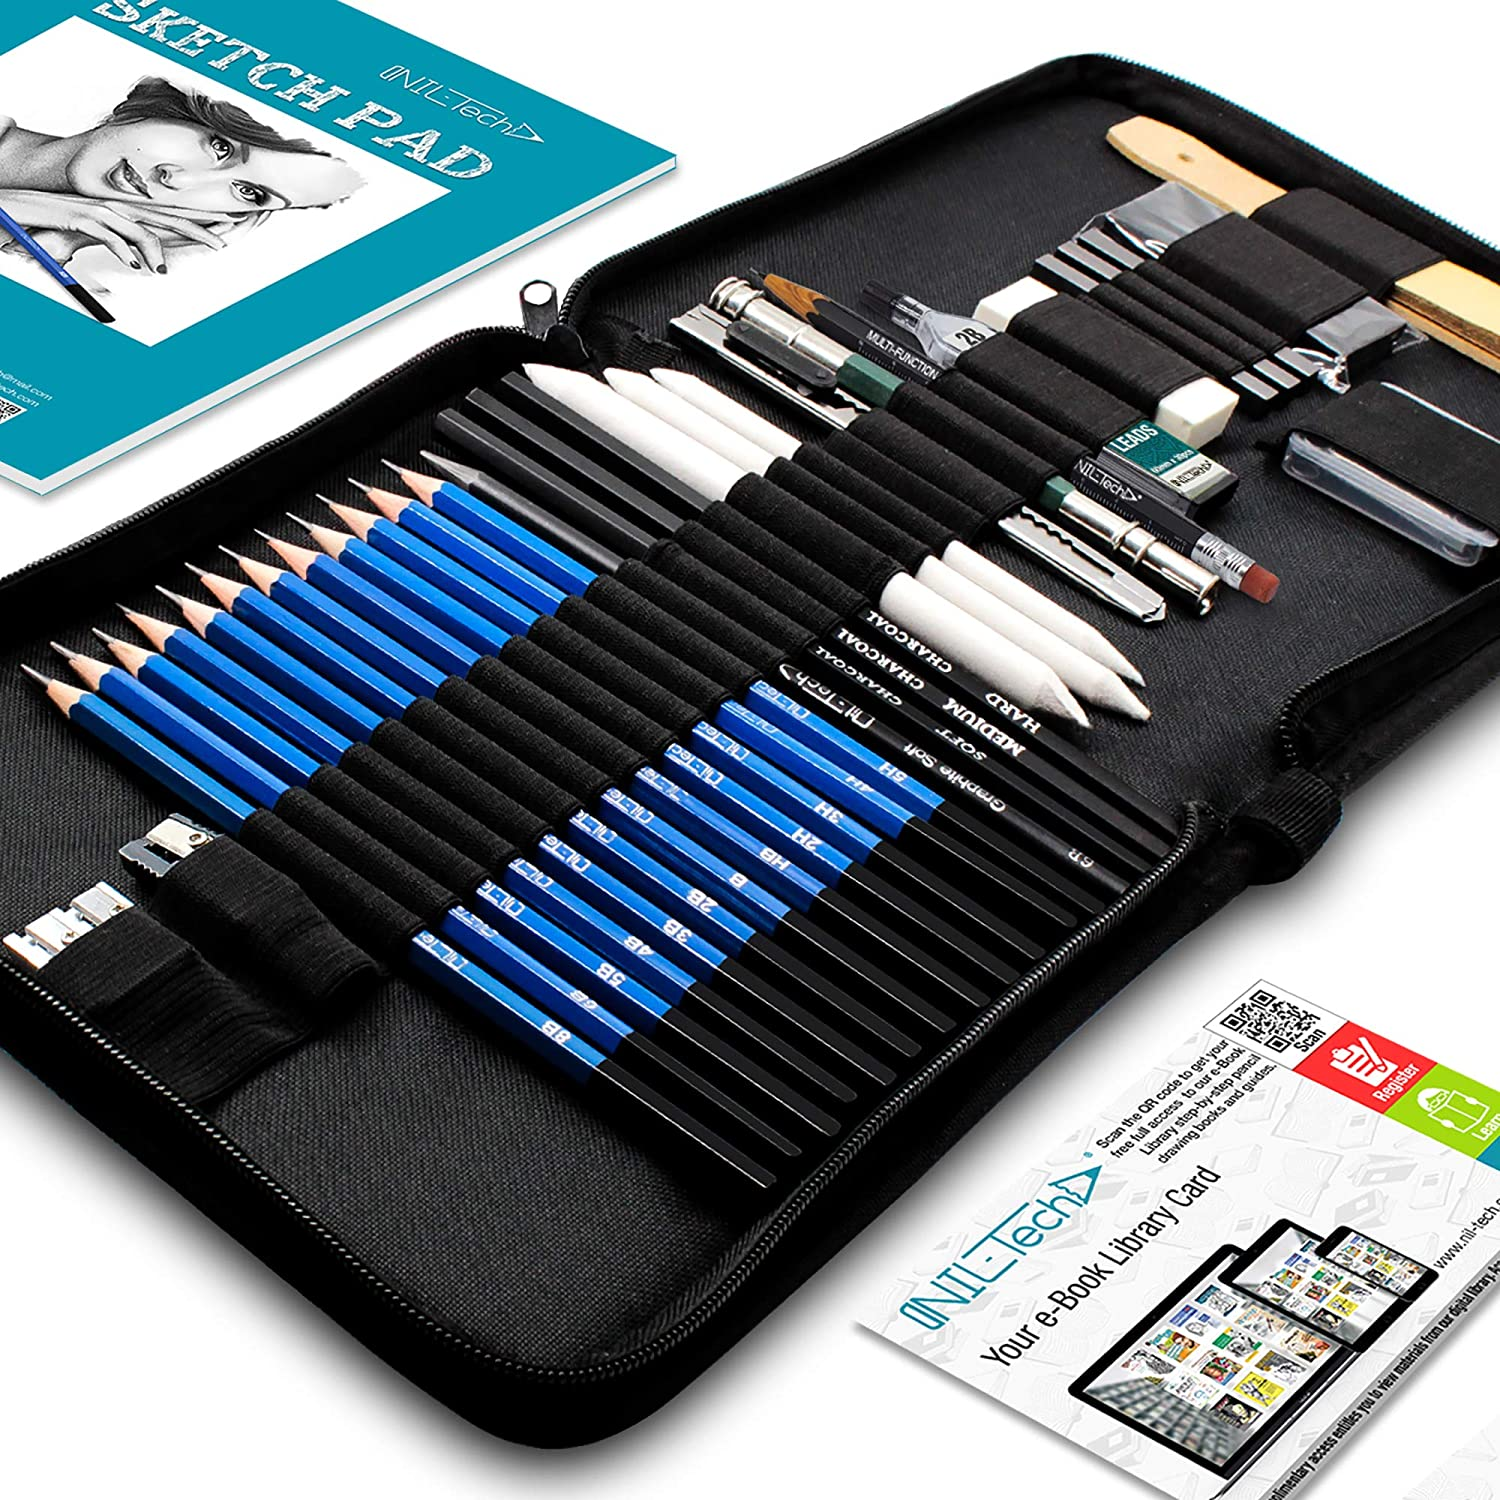 Drawing Pencils Art Supplies - 37 Sketching Art Set - Each art supply Includes Sketch Book and BONUS Digital Library Drawing Tutorials Cool Stuff - Pencil Pouch, Graphite Charcoal Pencils, Erasers